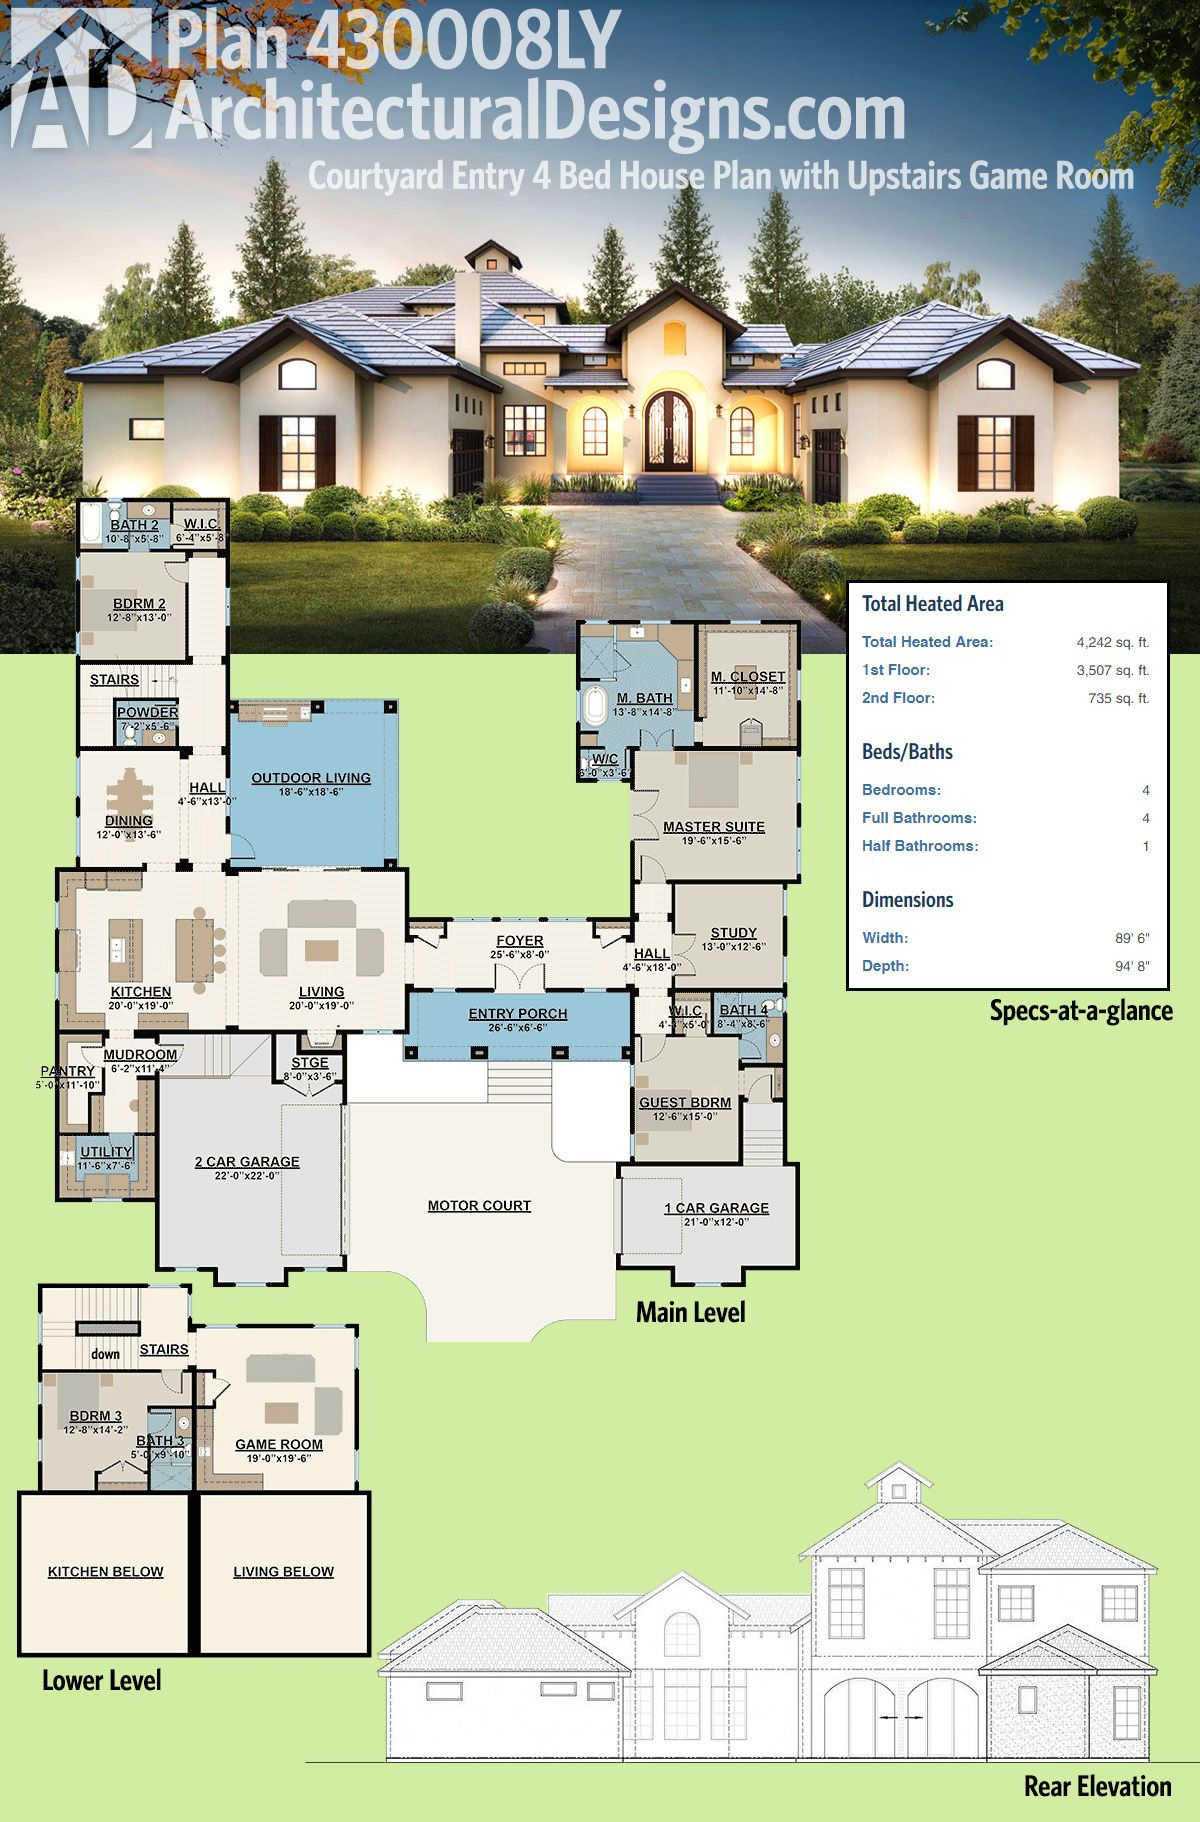 Plan 430008ly courtyard entry 4 bed house plan with for Game room floor plans ideas